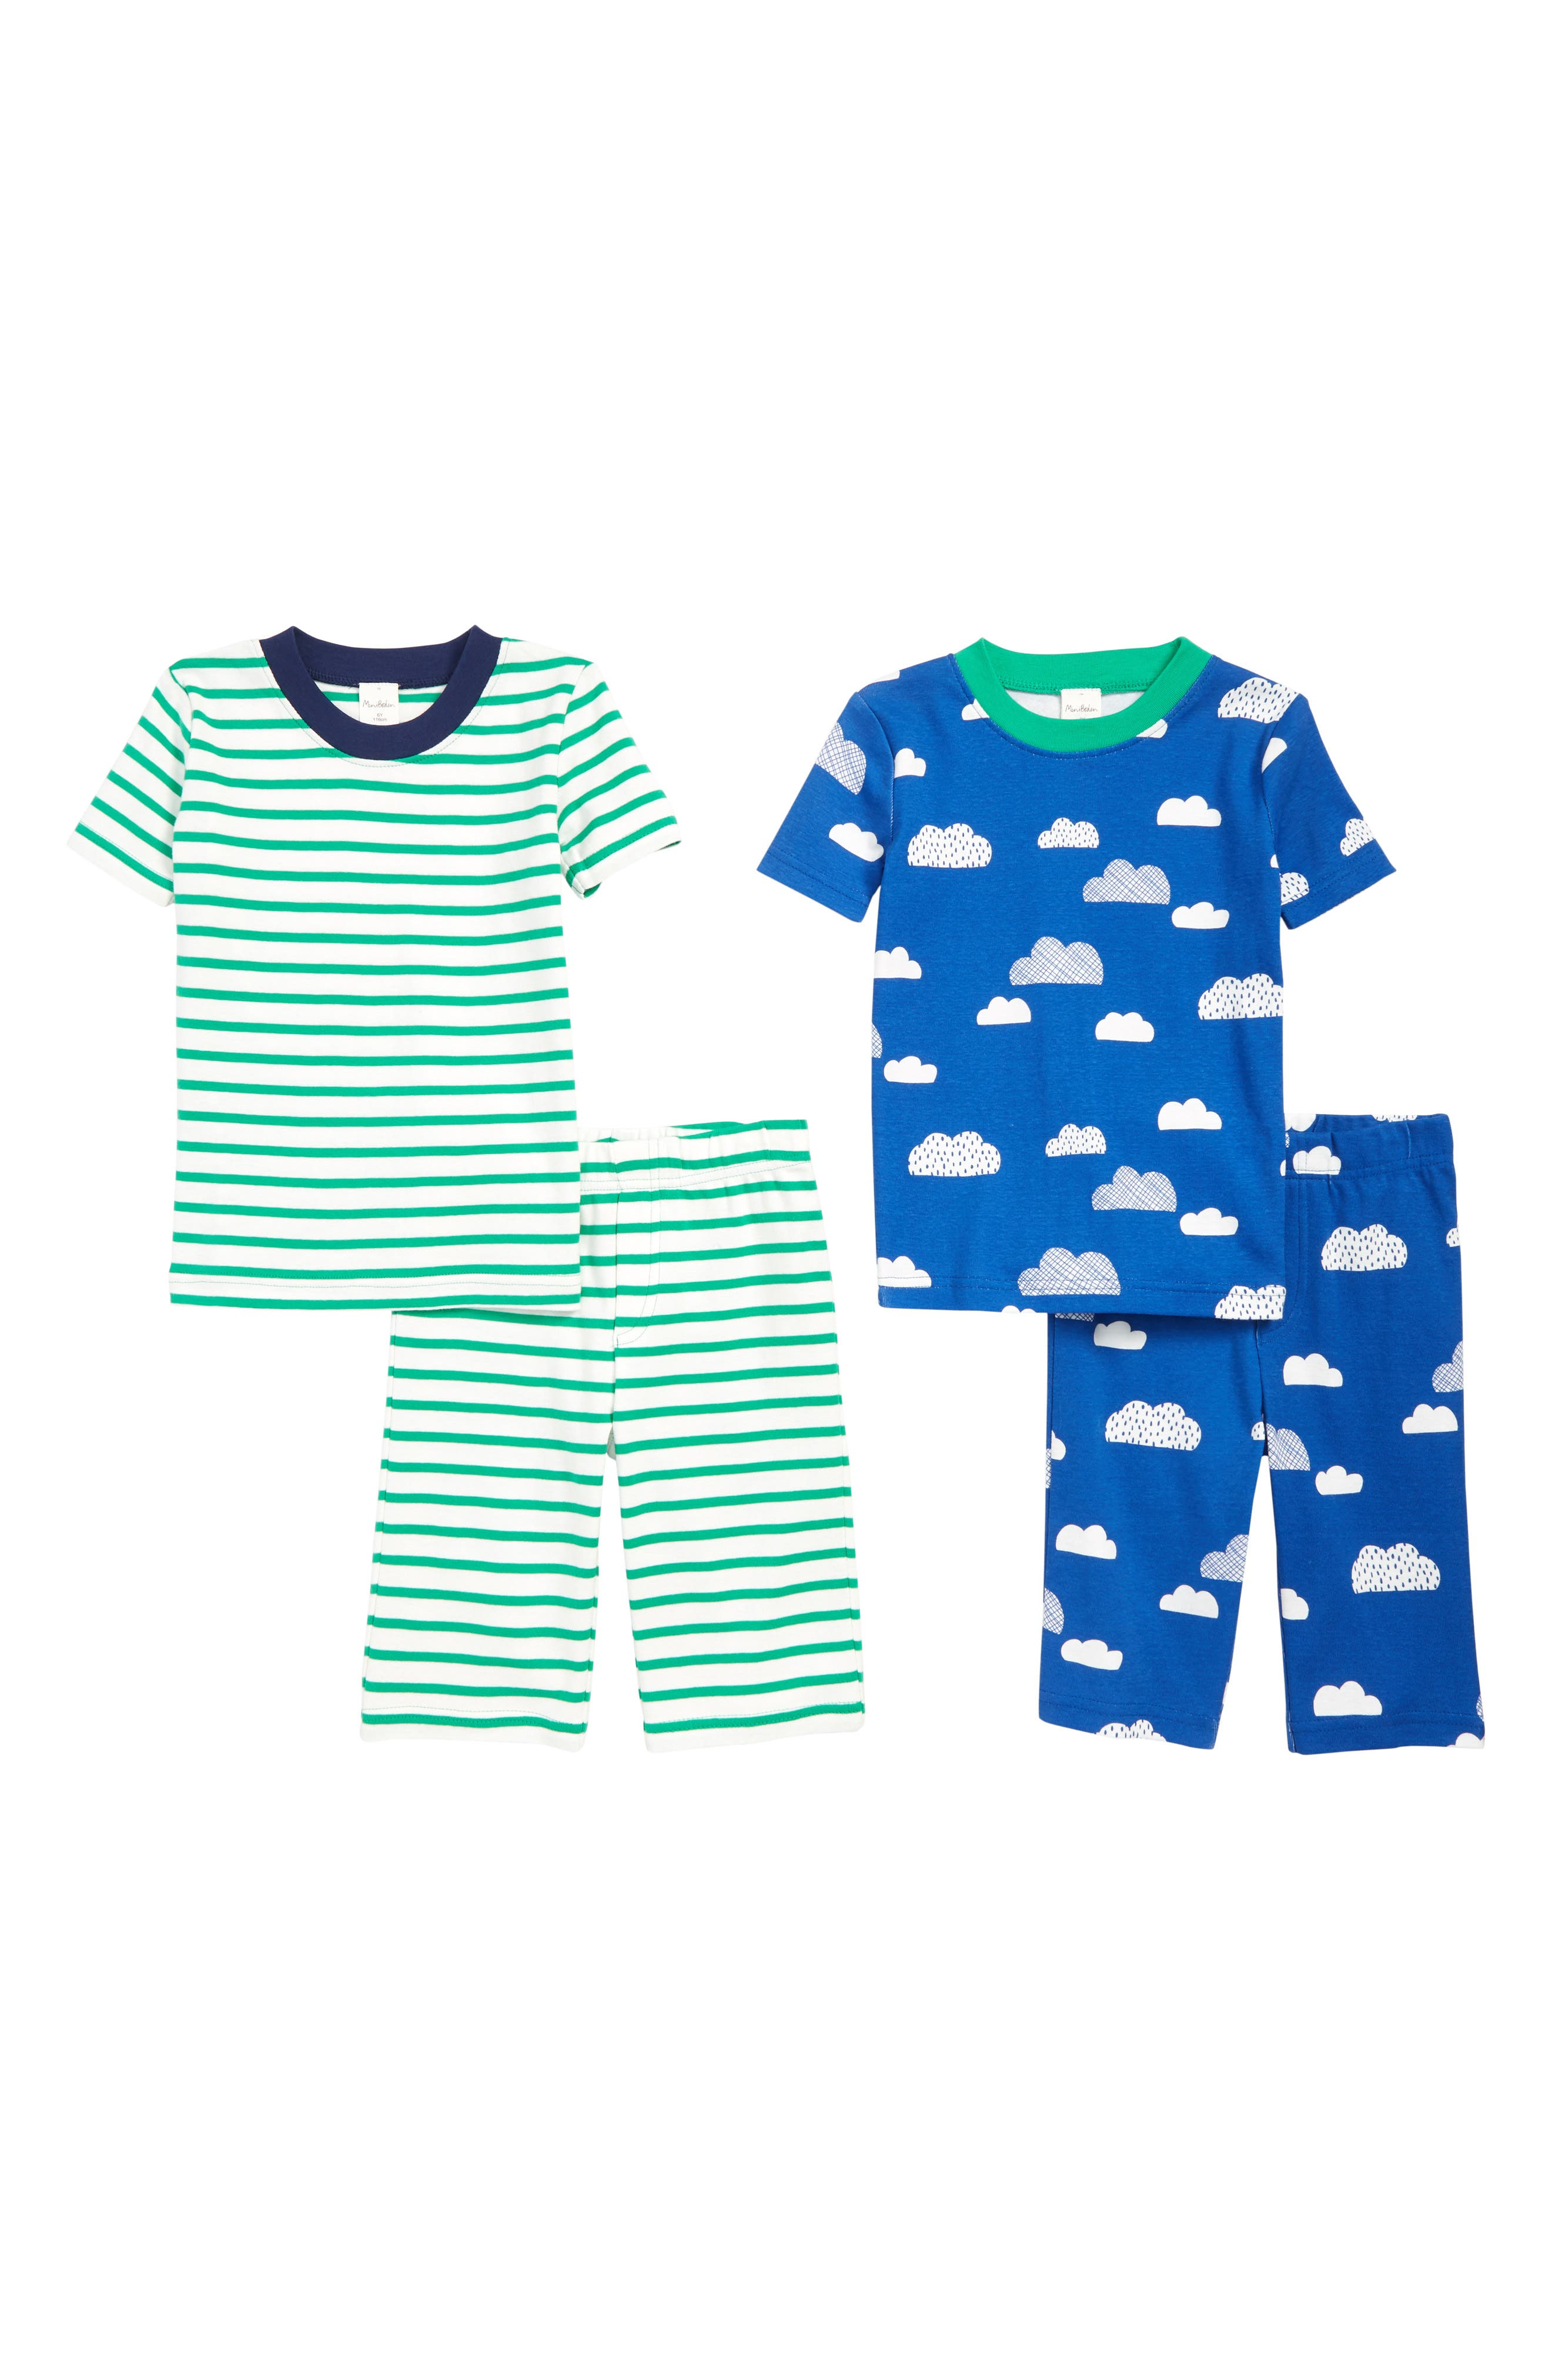 MINI BODEN,                             2-Pack Fitted Two-Piece Short Pajamas,                             Main thumbnail 1, color,                             BLU DUKE BLUE CLOUDASTRO GREEN